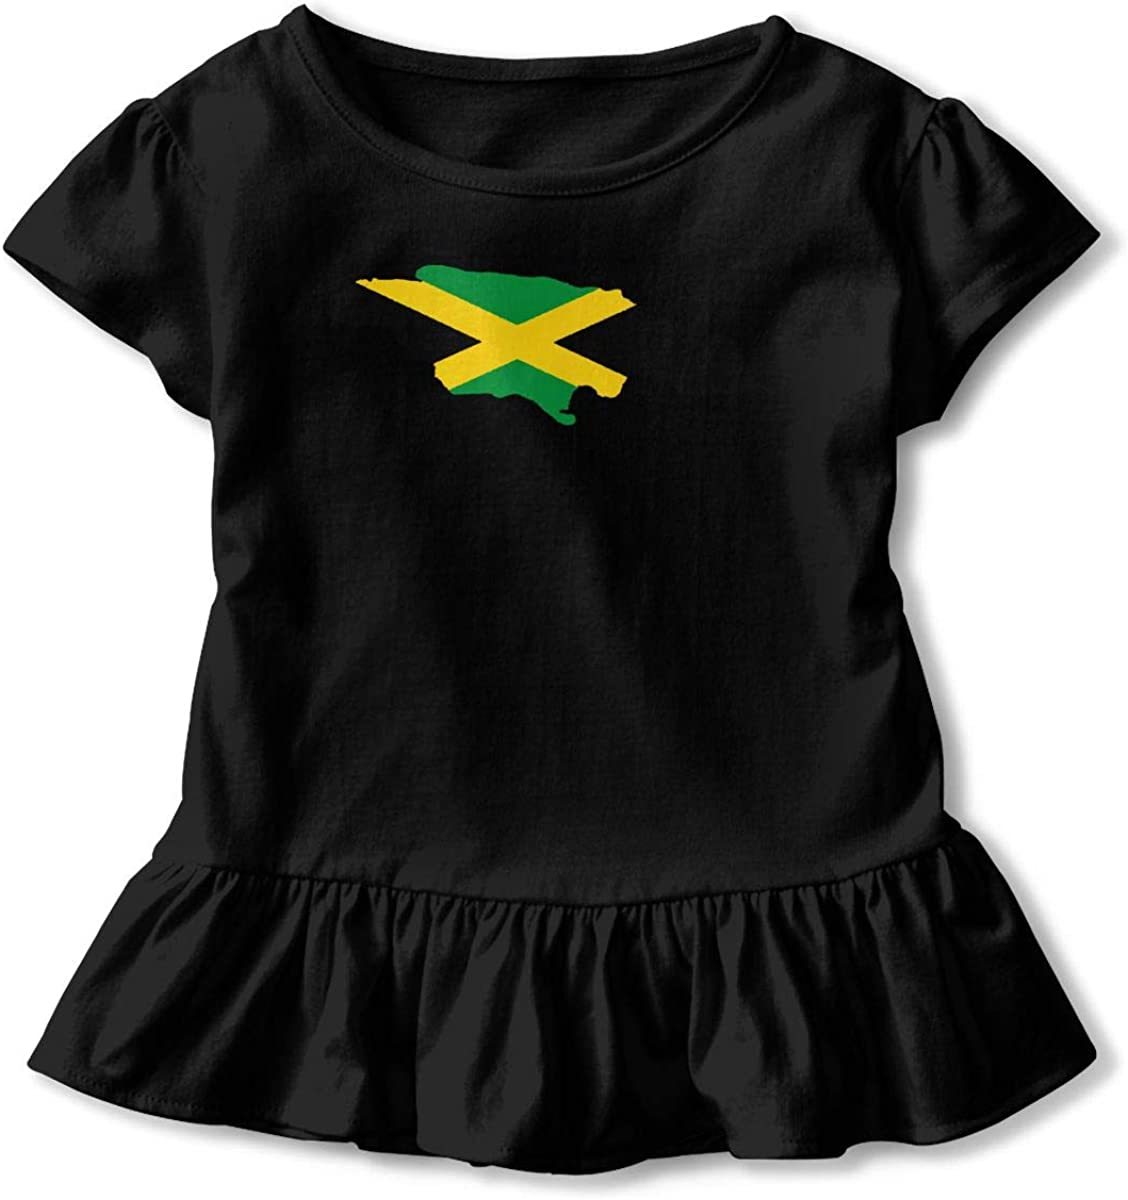 Kawaii Tunic Shirt Dress with Falbala Zi7J9q-0 Short-Sleeve Jamaican Flag Shirts for Children 2-6T